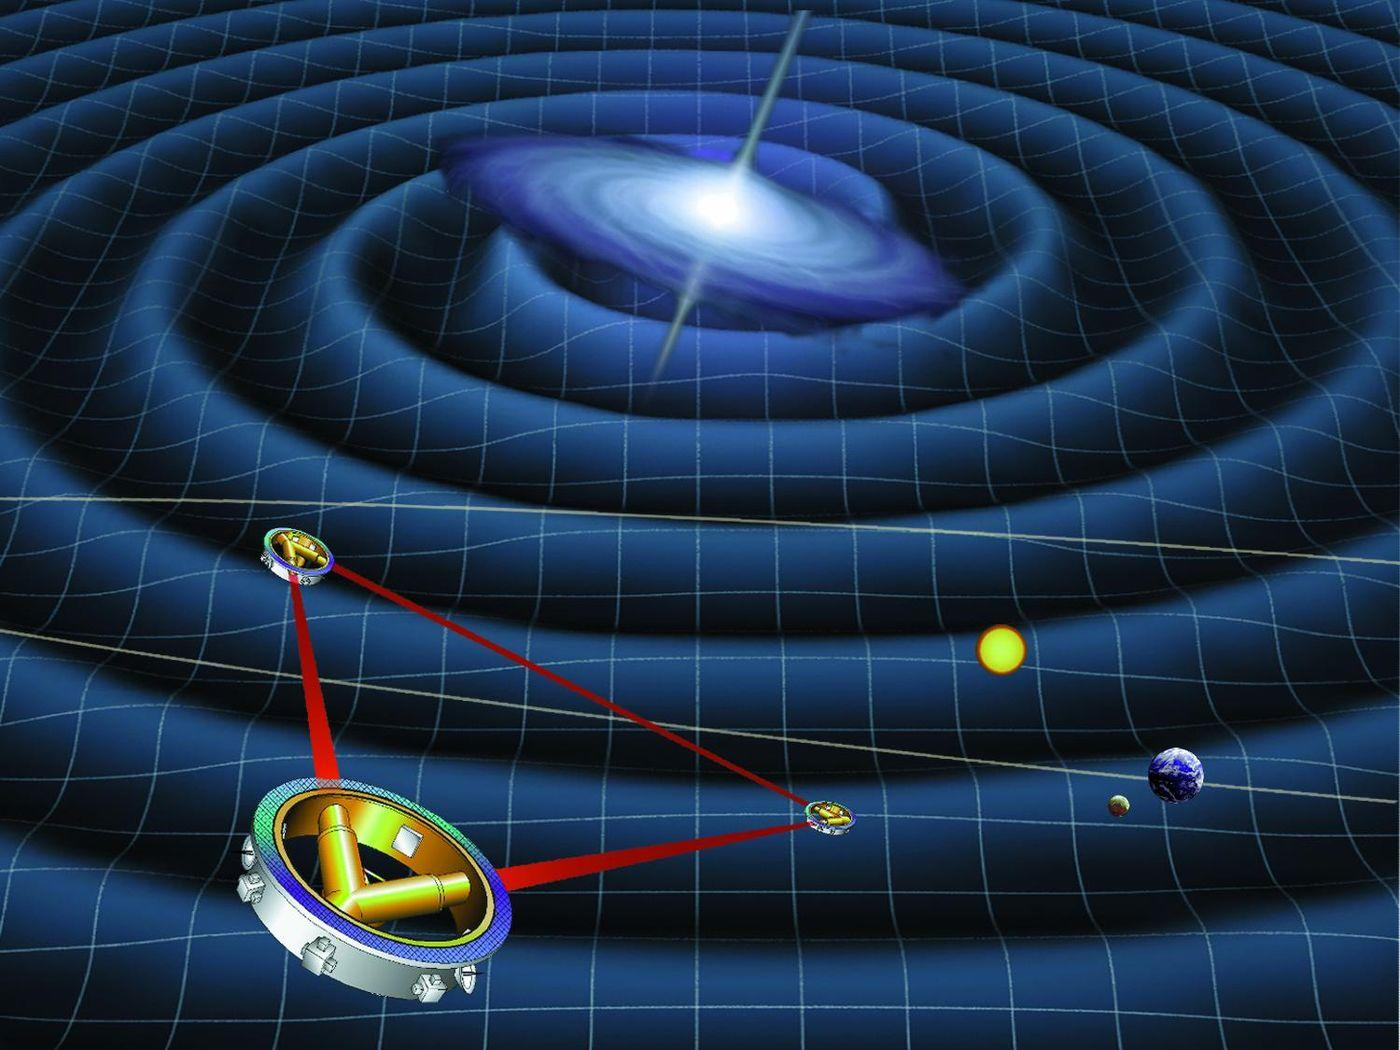 Scientists have finally proven Einstein's century-old theory about gravitational waves